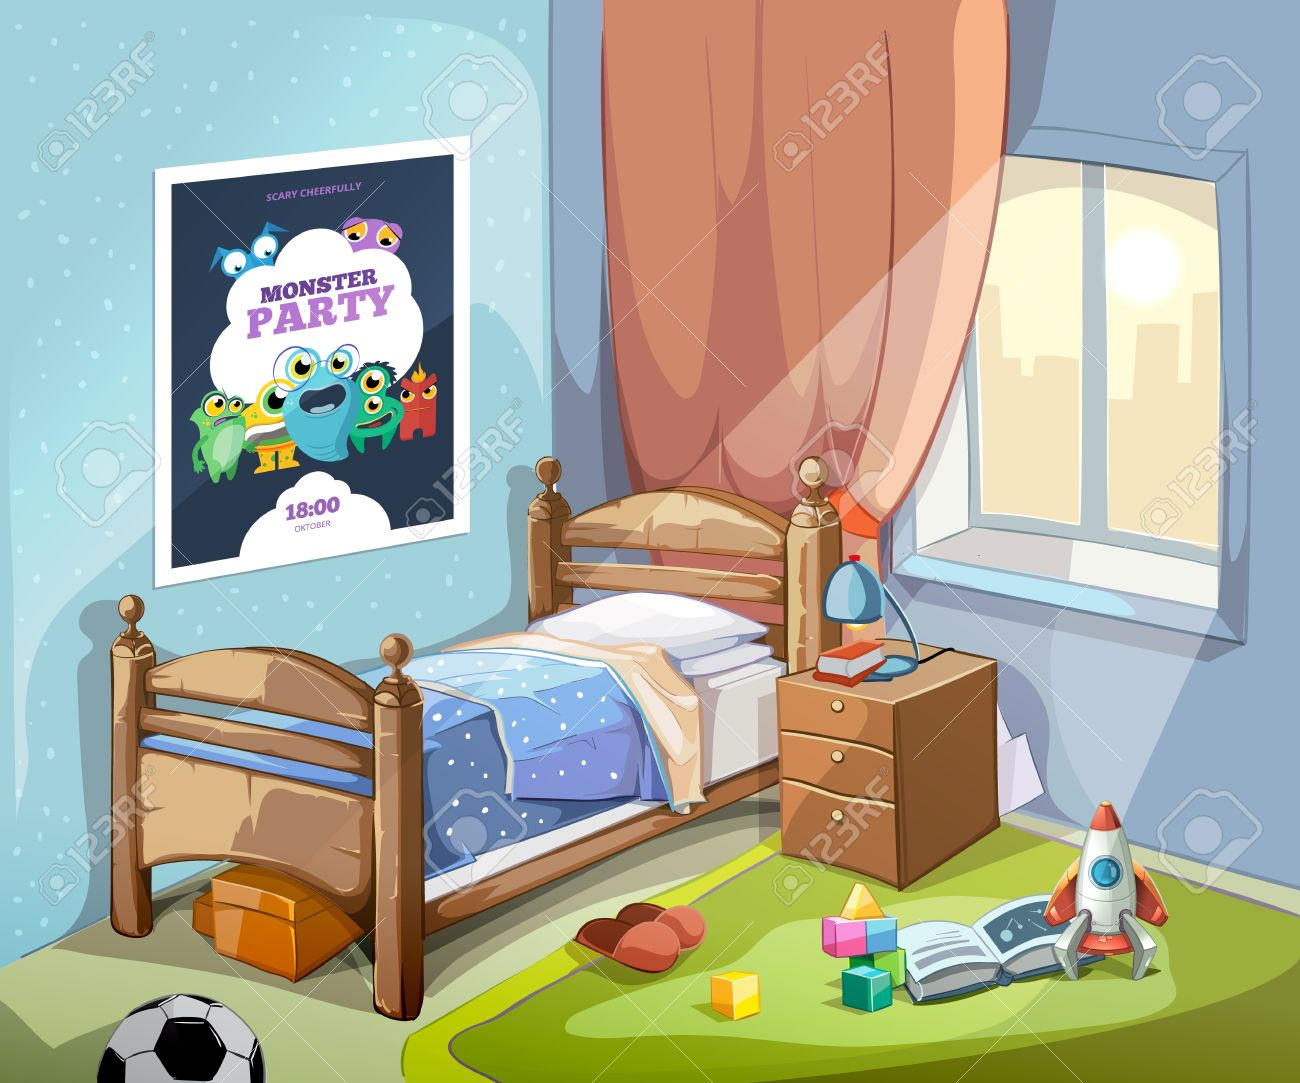 Childrens Bedroom Interior In Cartoon Style With Football Ball